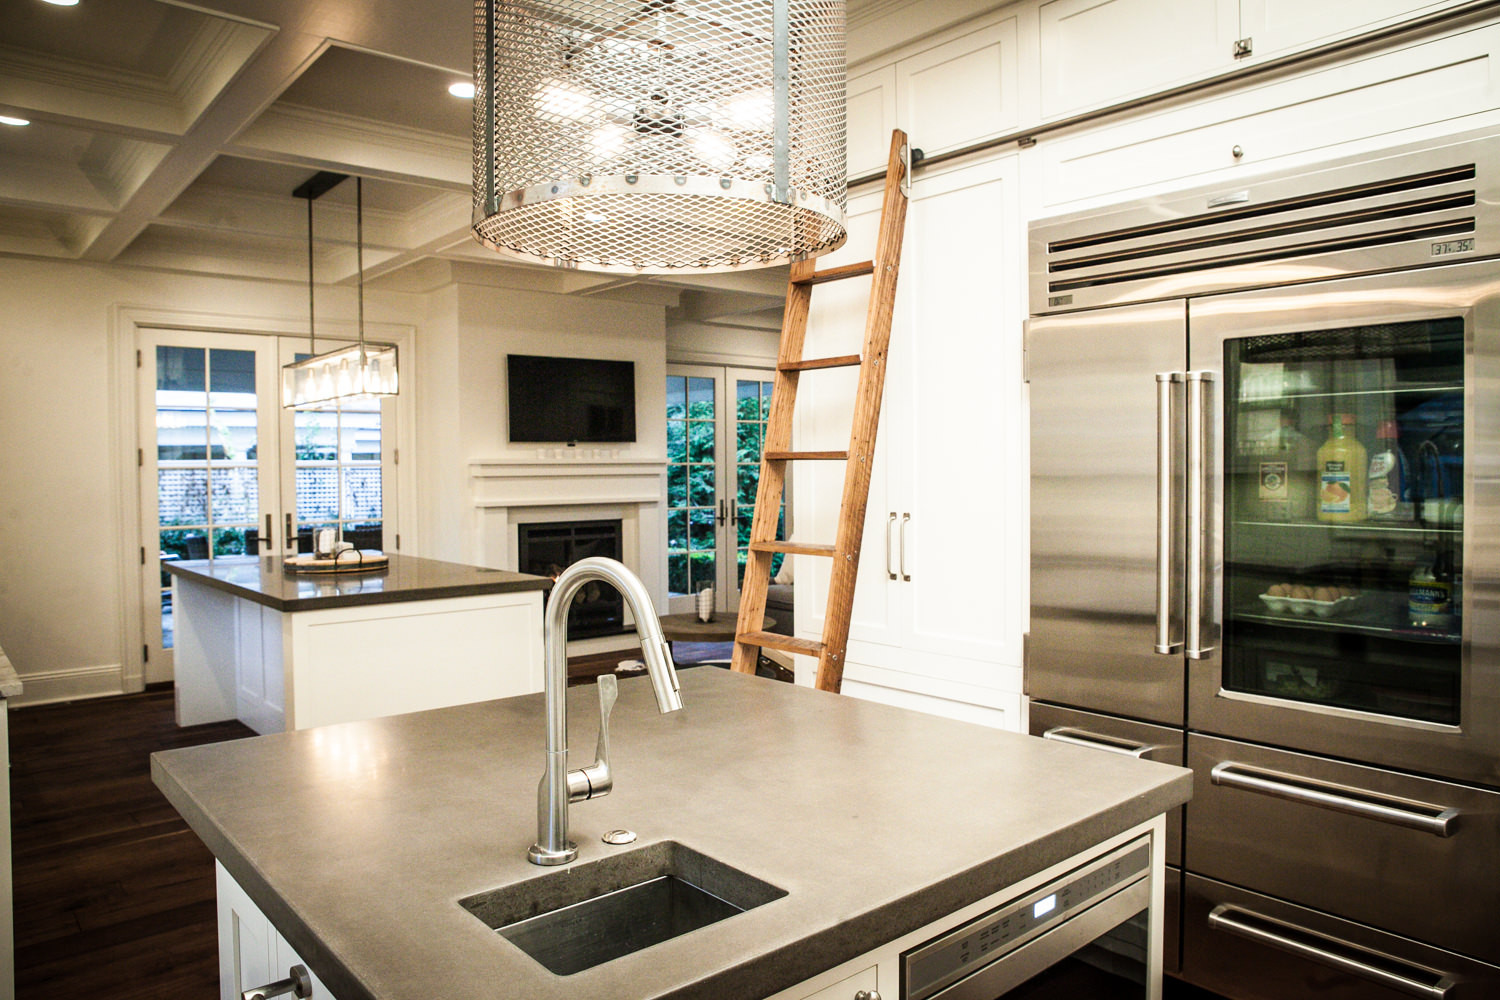 Custom cabinetry by Michael Lucci